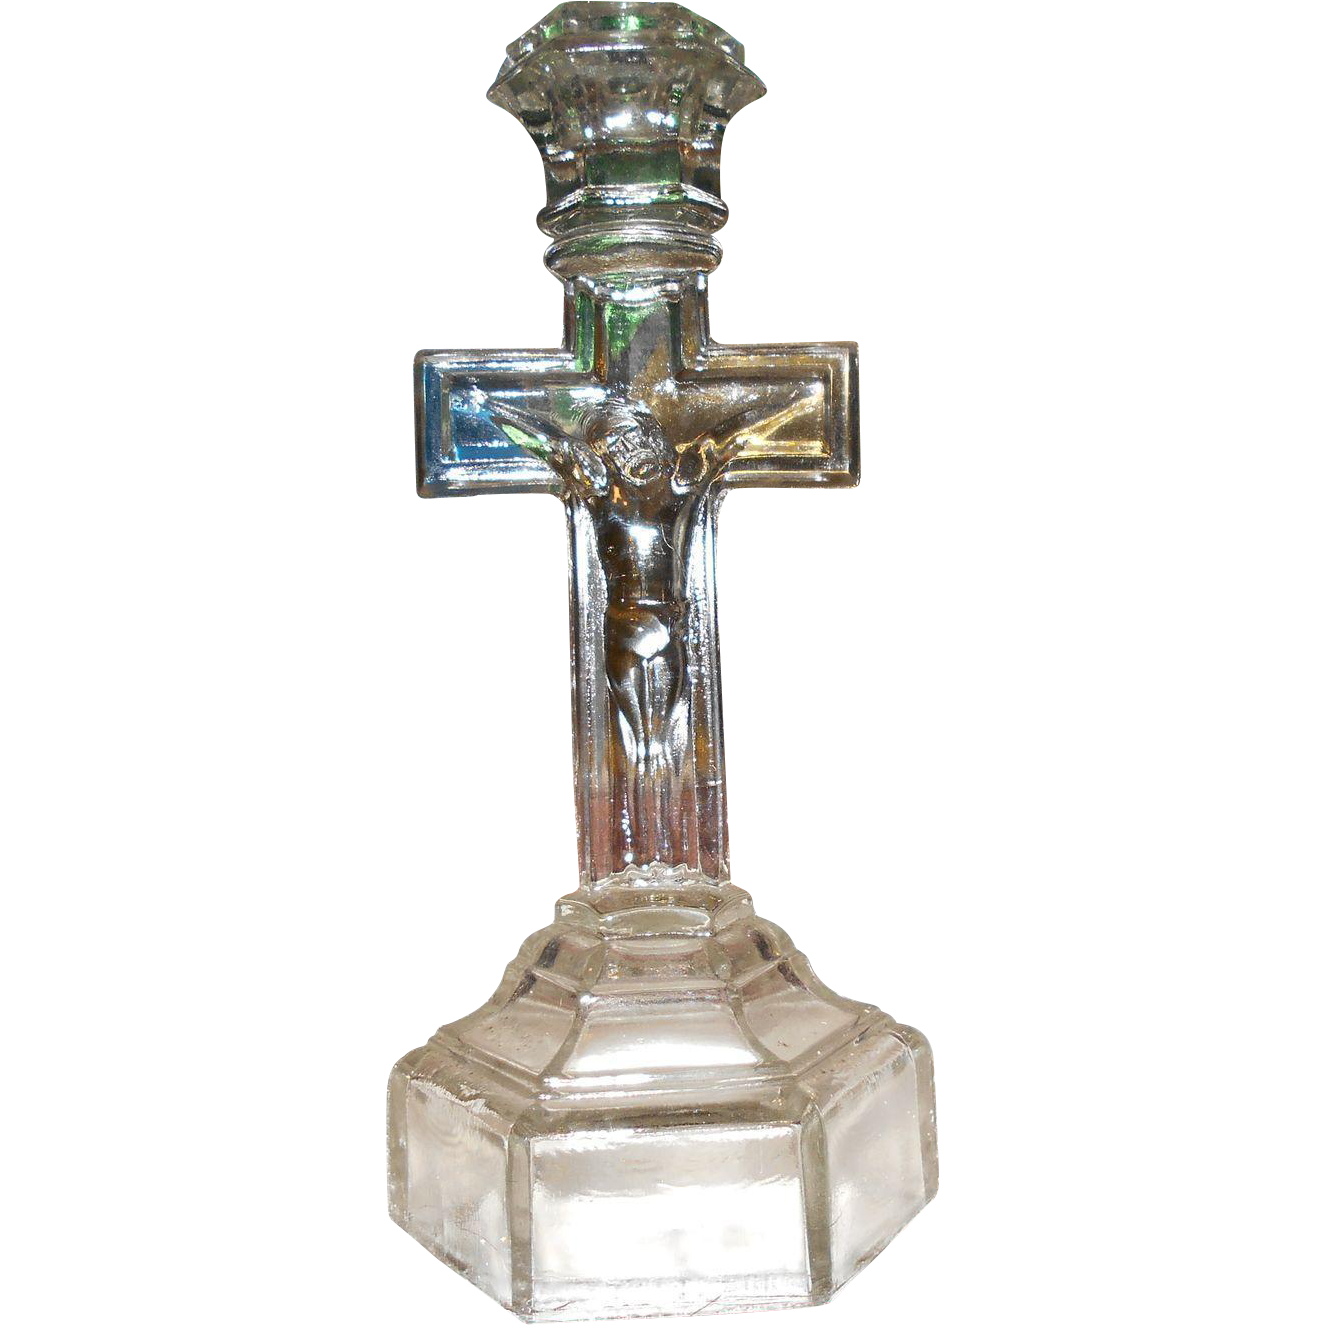 Vintage crucifix pressed manganese glass candlestick for L furniture warehouse victoria bc